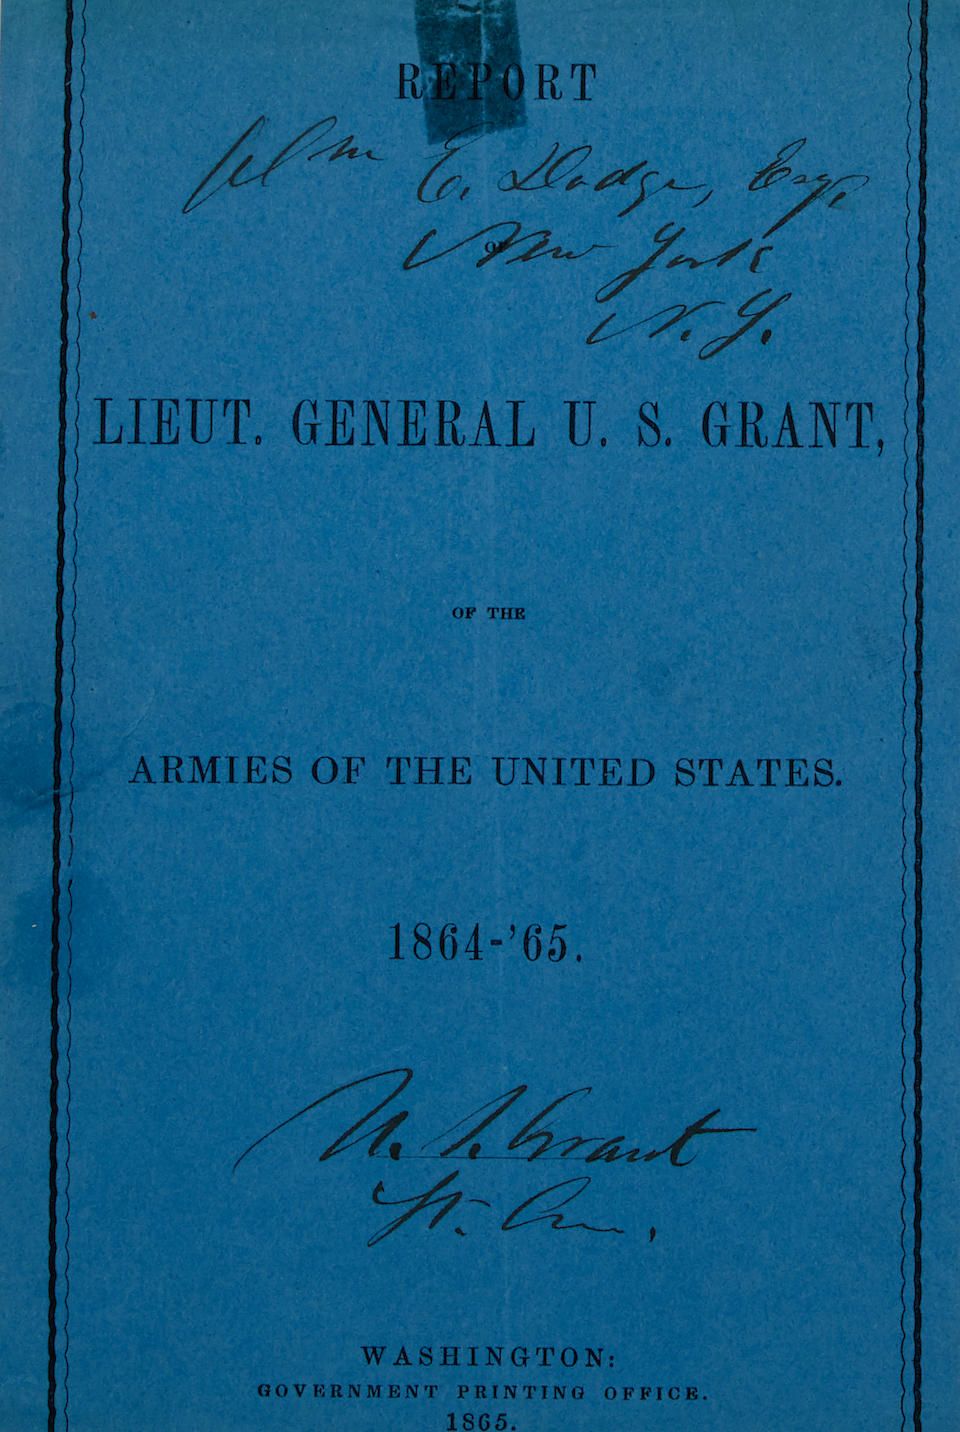 GRANT, ULYSSES S. 1822-1885. Report of Lieut. General U.S. Grant of the Armies of the United States. 1864-1865.  Washington: 1865.